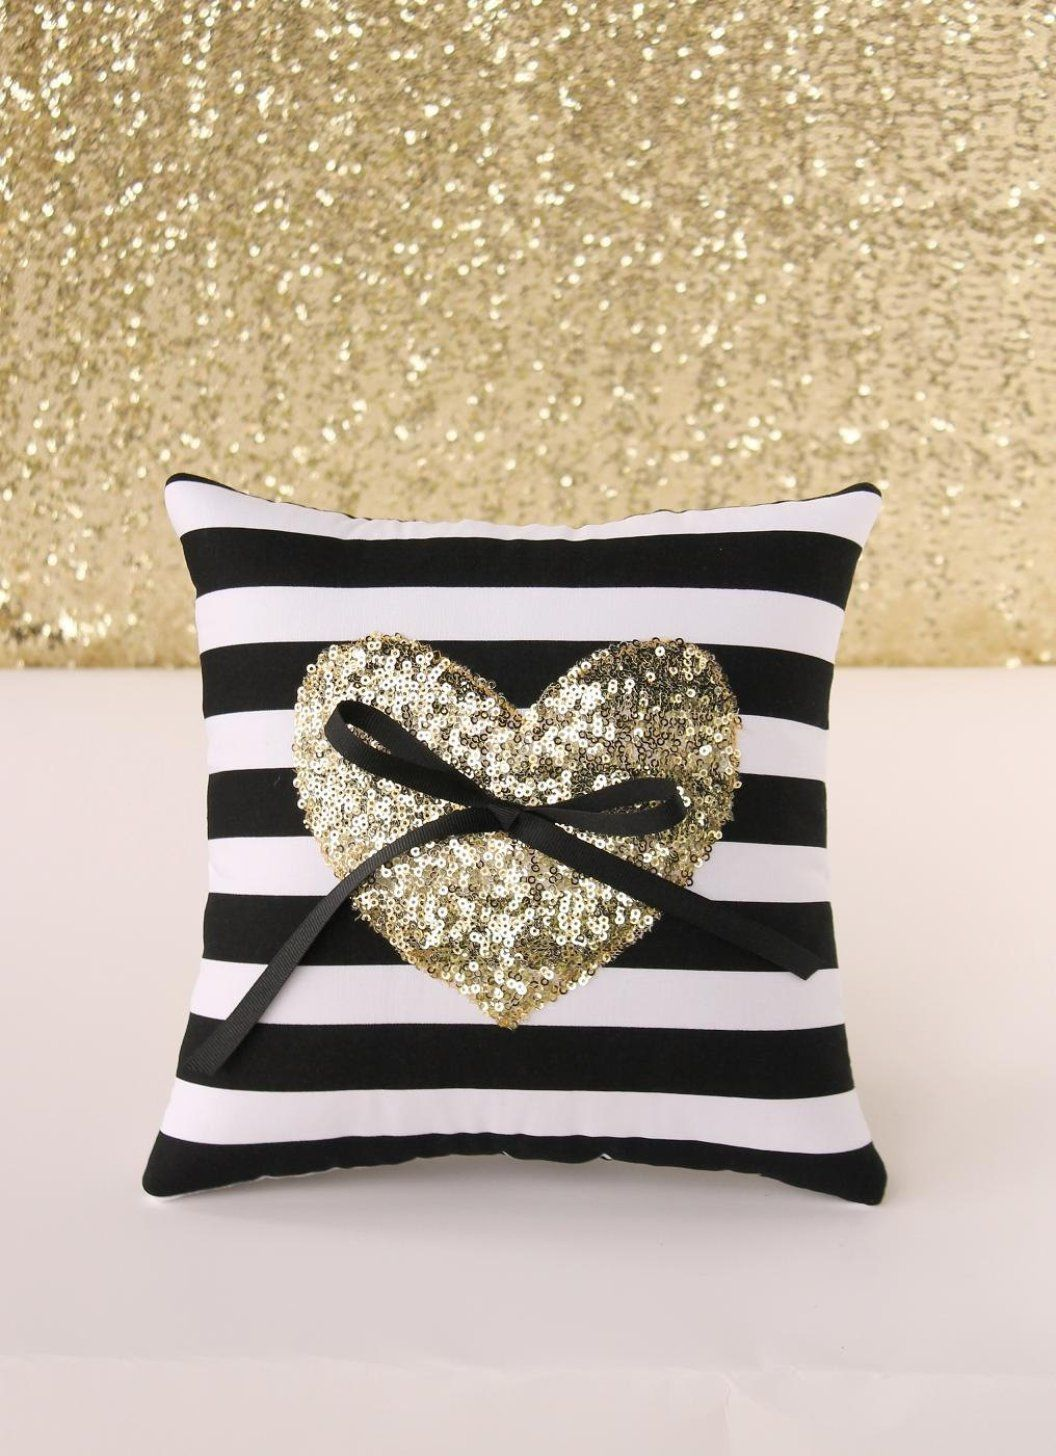 Couch Pillows Ivory, Gold And Black | Black And Gold Pillows, Black And  Gold Throw Pillows | Frontroom Ivory, Gold And Black Decorating Ideas |  Pinterest